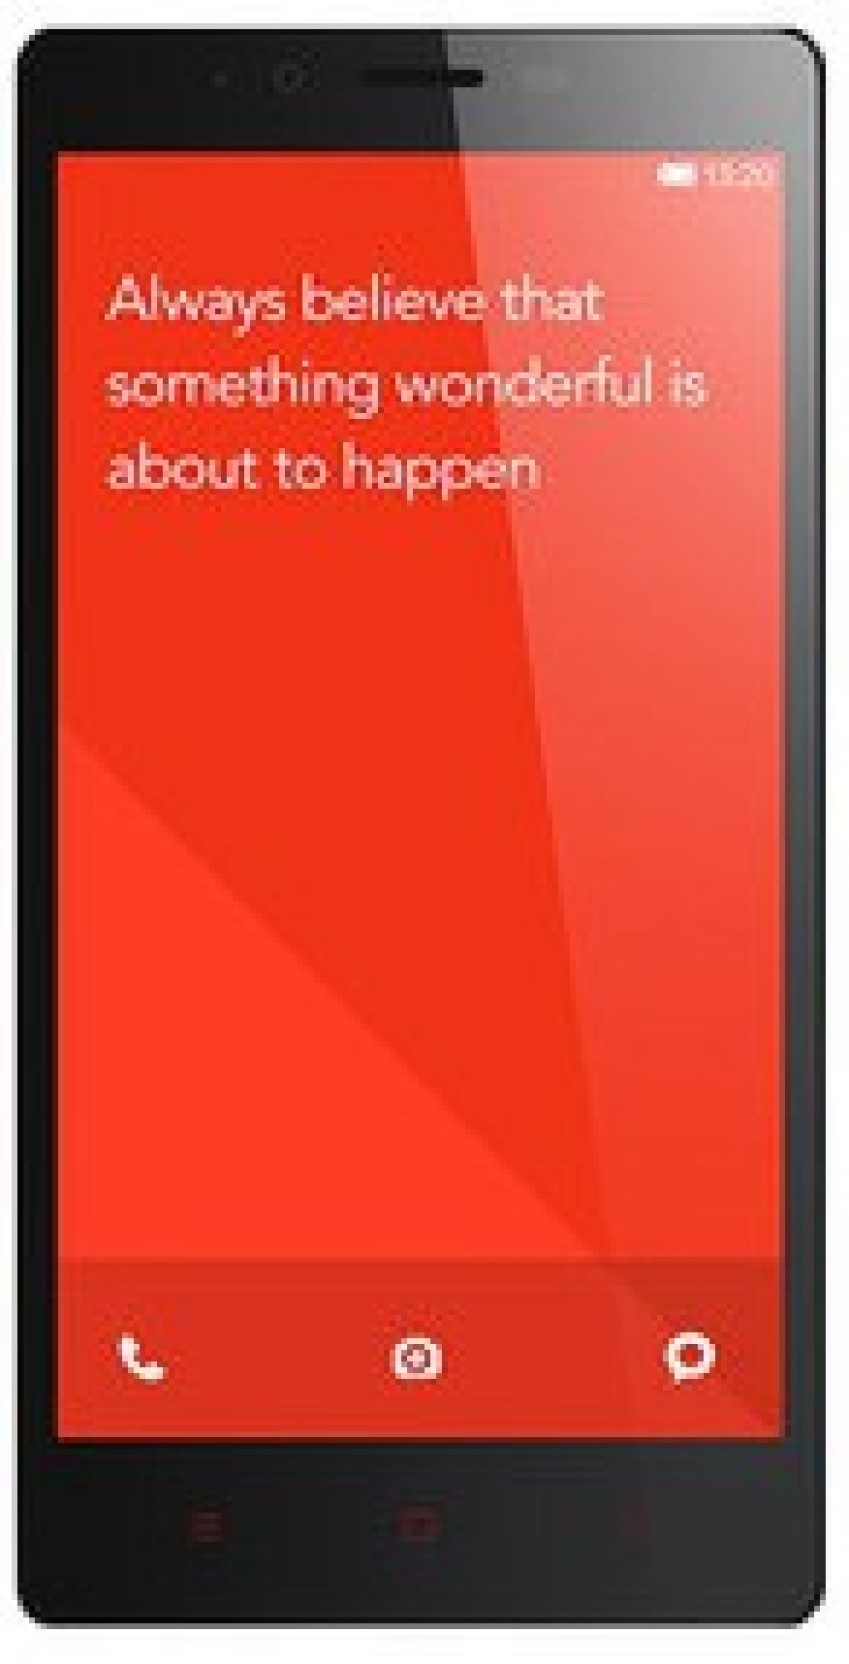 Redmi 1s Metal Gray 8 Gb Online At Best Price Only On 2 Ram 1 8gb Home